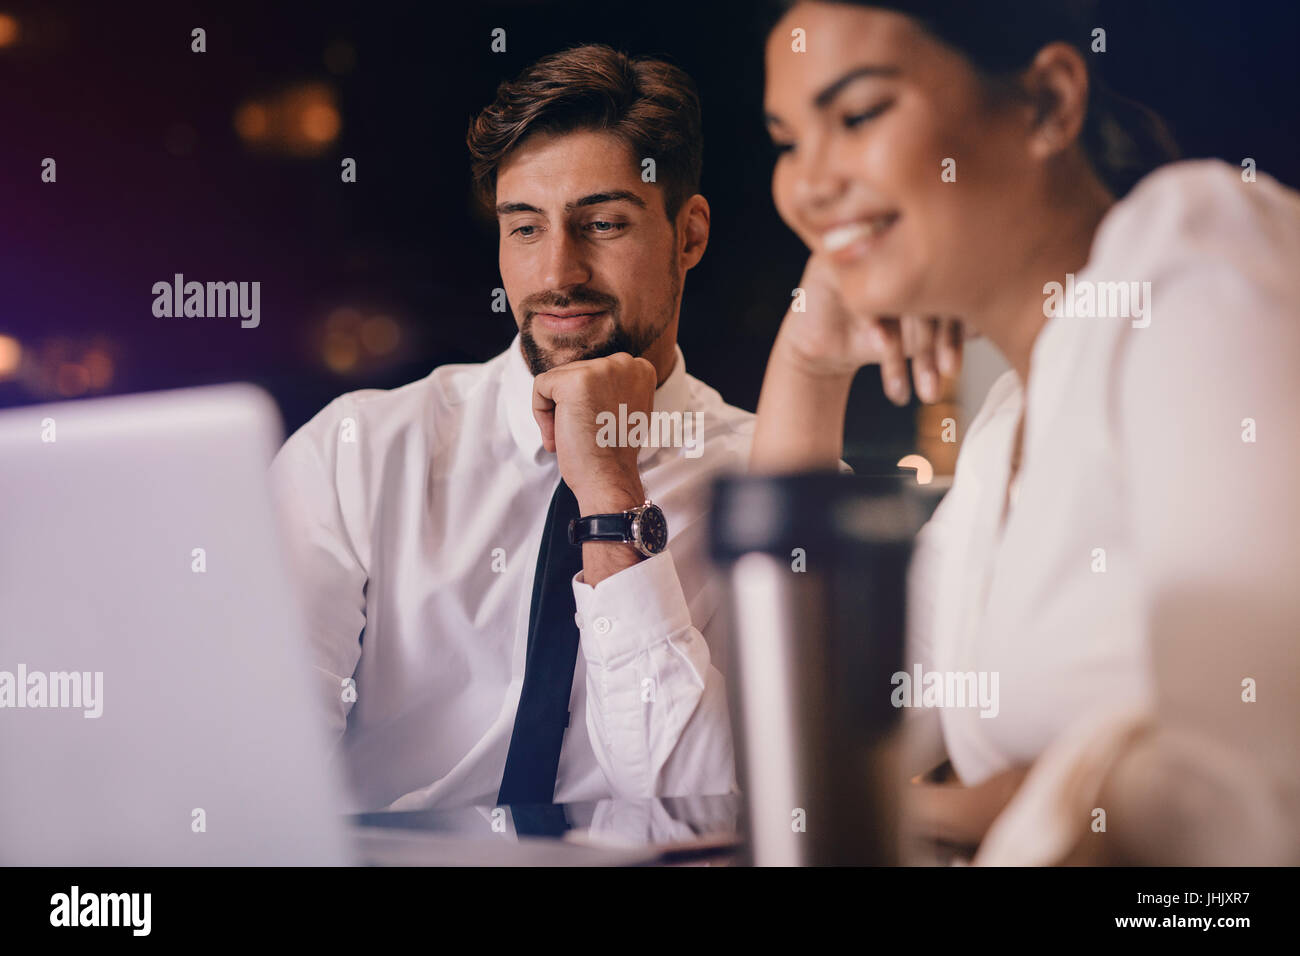 Business man and woman sitting at table and looking at laptop. Business people waiting at airport lounge using laptop - Stock Image